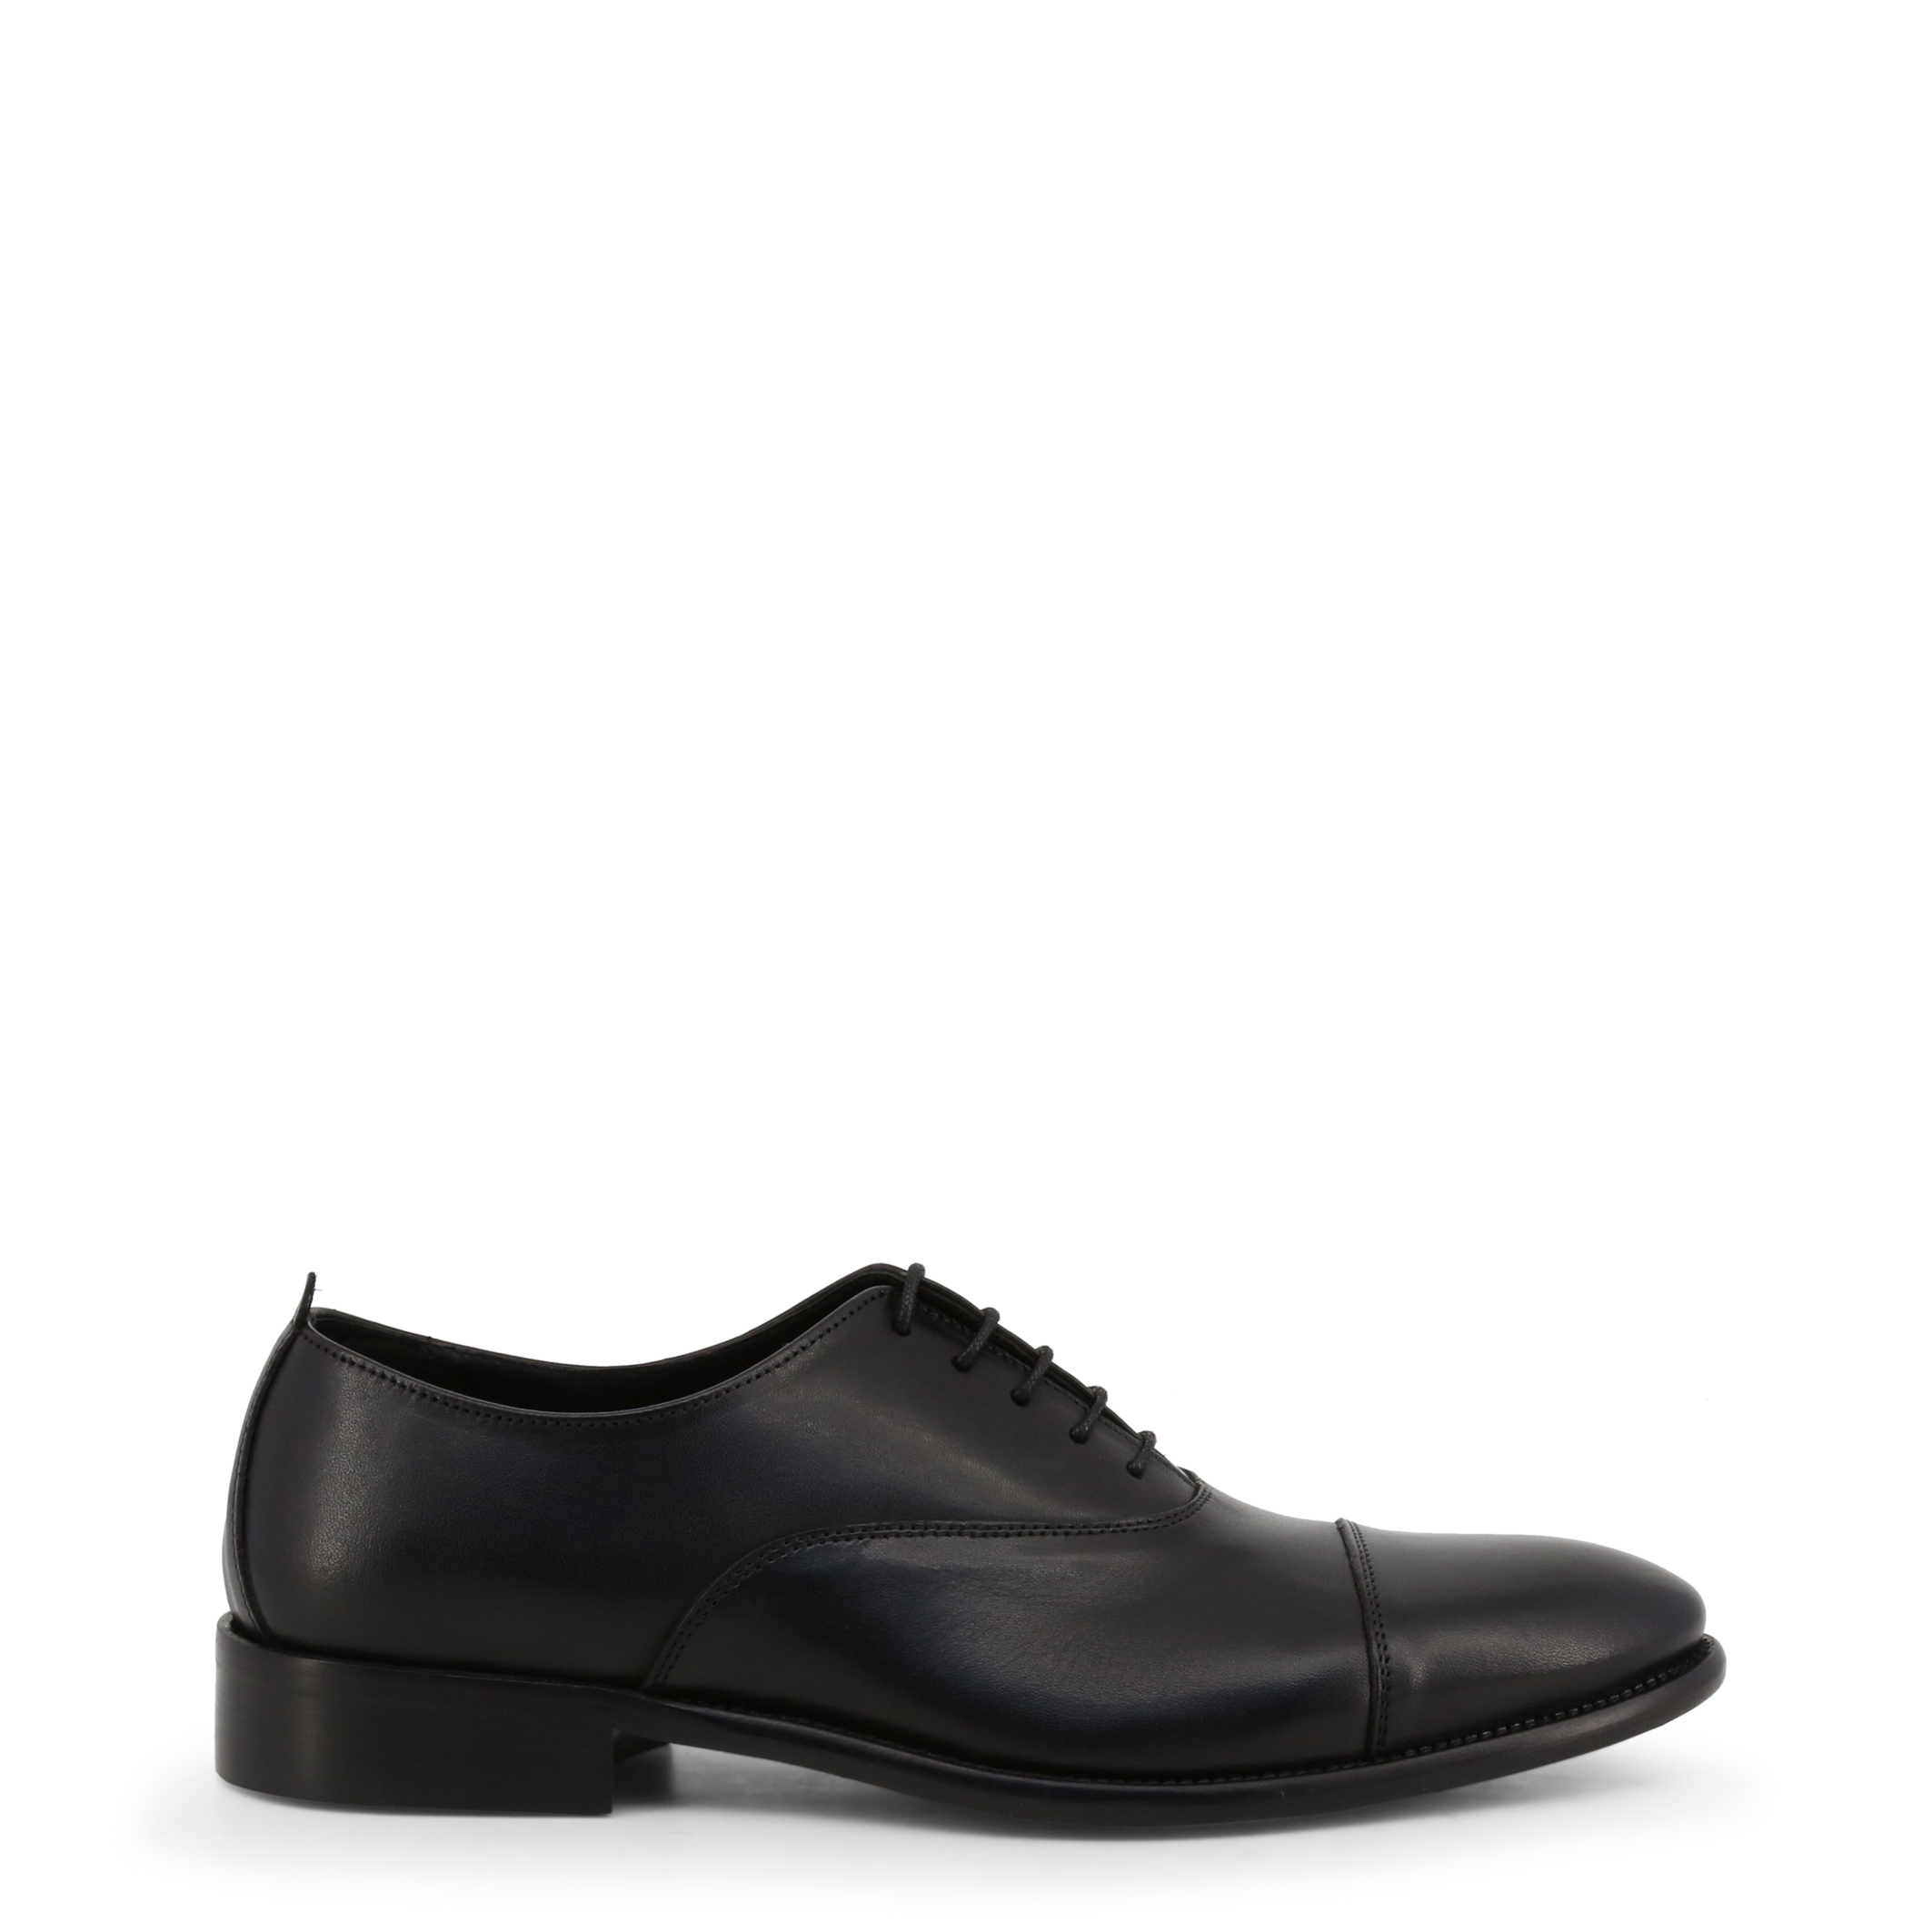 chaussures stbagueate Made in Italia TARUMBO hommes noir 99758